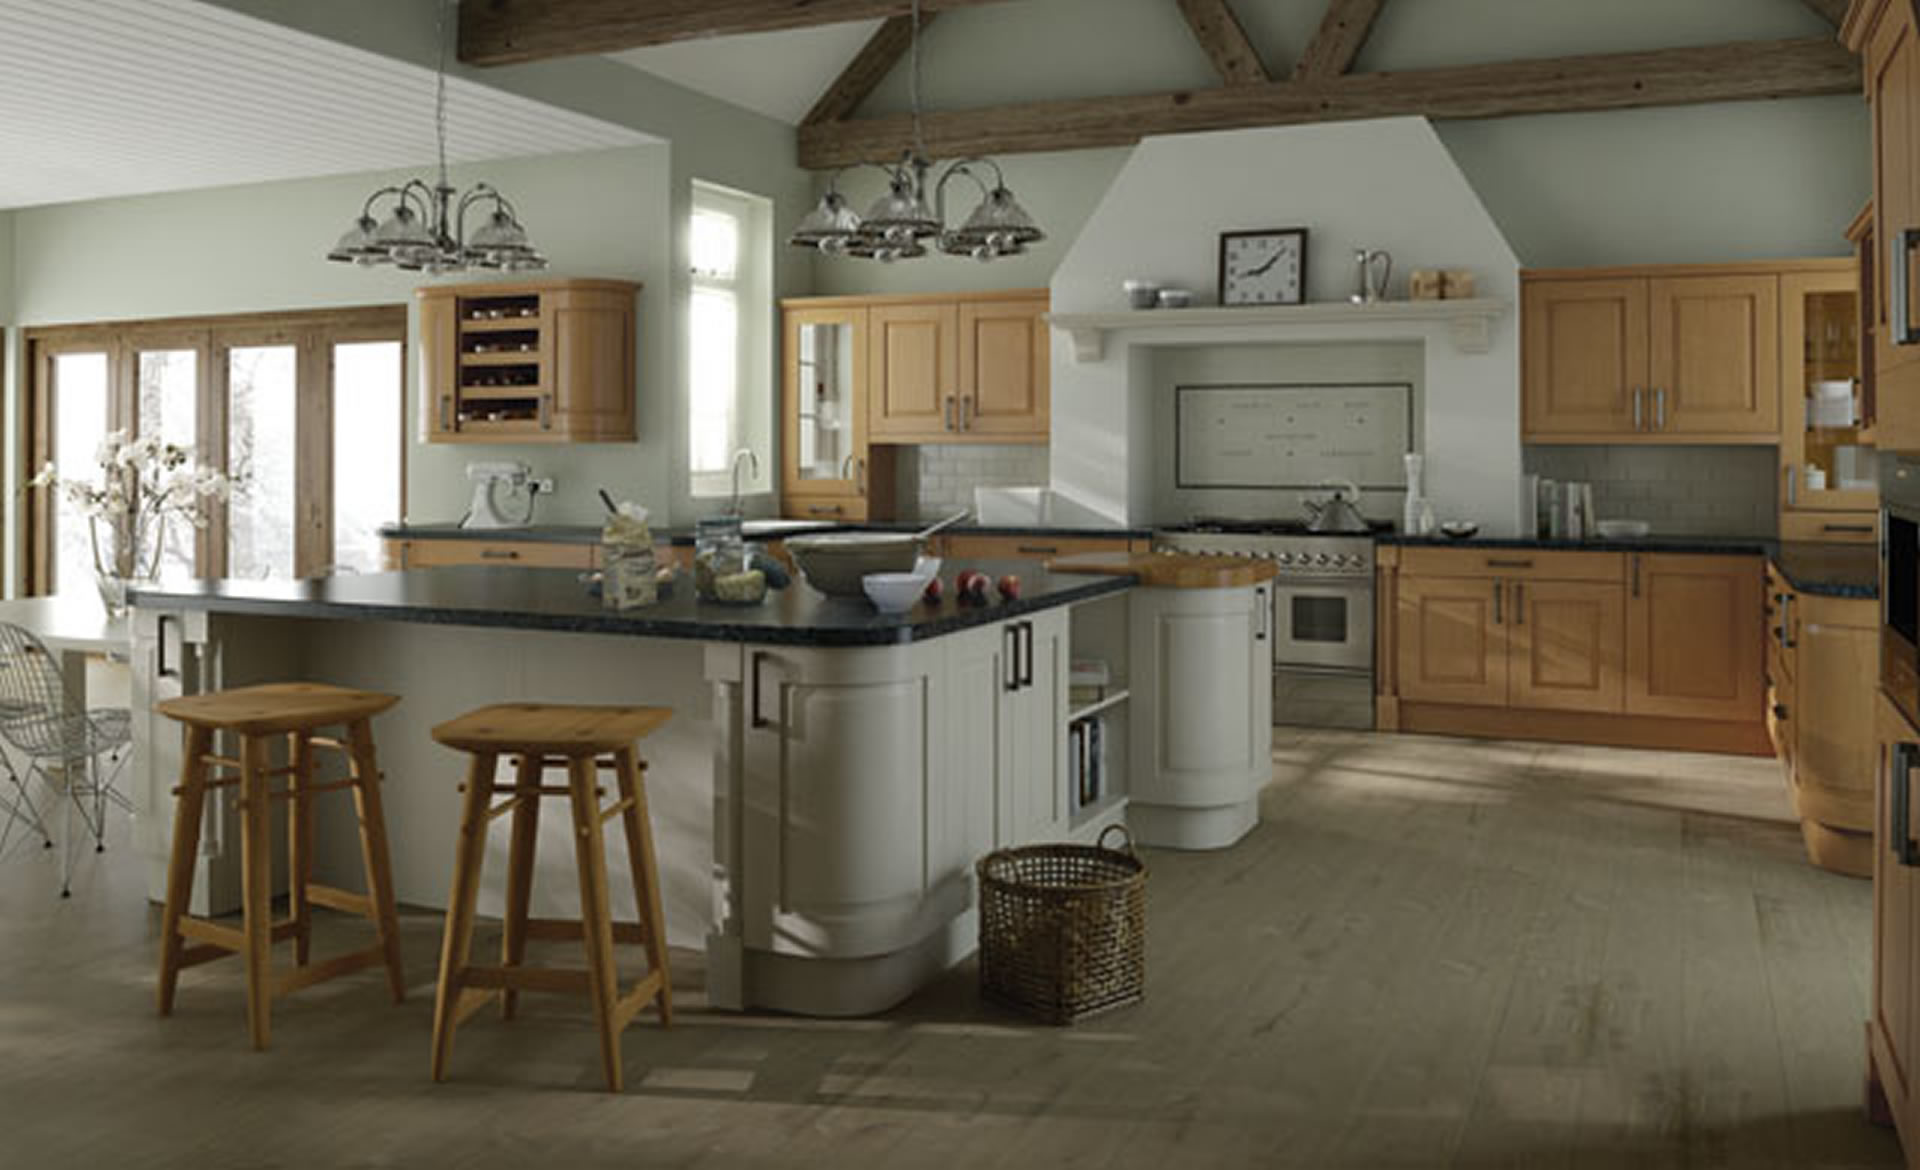 Kitchen Designs Windsor Classic: Oak And Ivory Supplied By Superior . Full resolution‎  image, nominally Width 1920 Height 1170 pixels, image with #604D32.